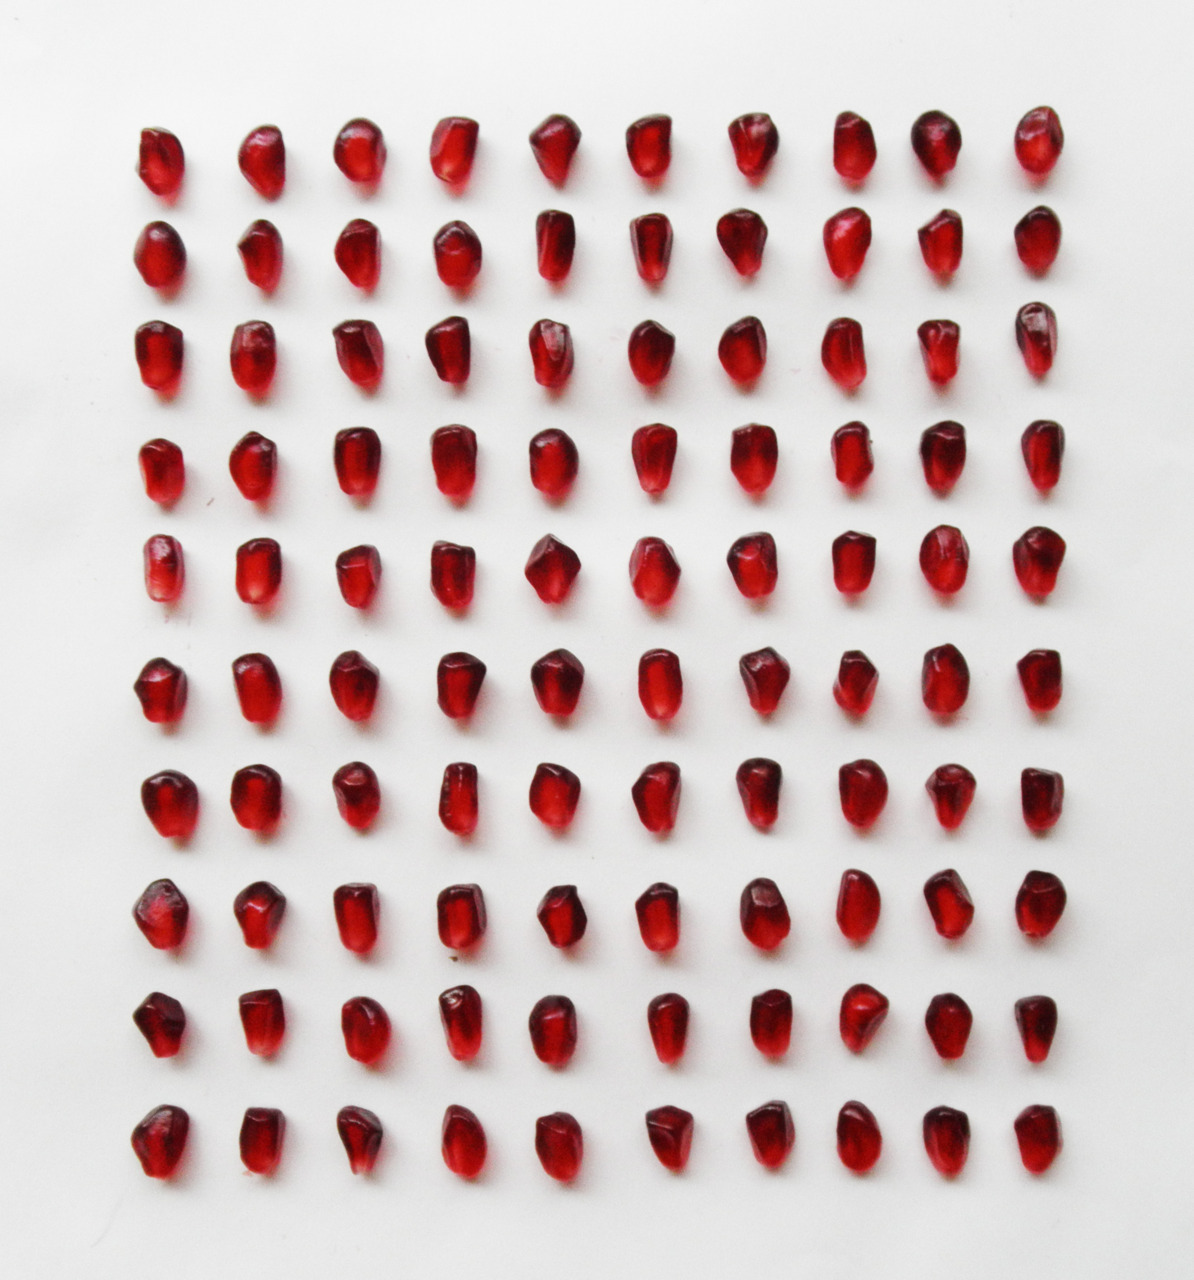 SUBMISSION: 100 pomegranate seeds, organized neatly.